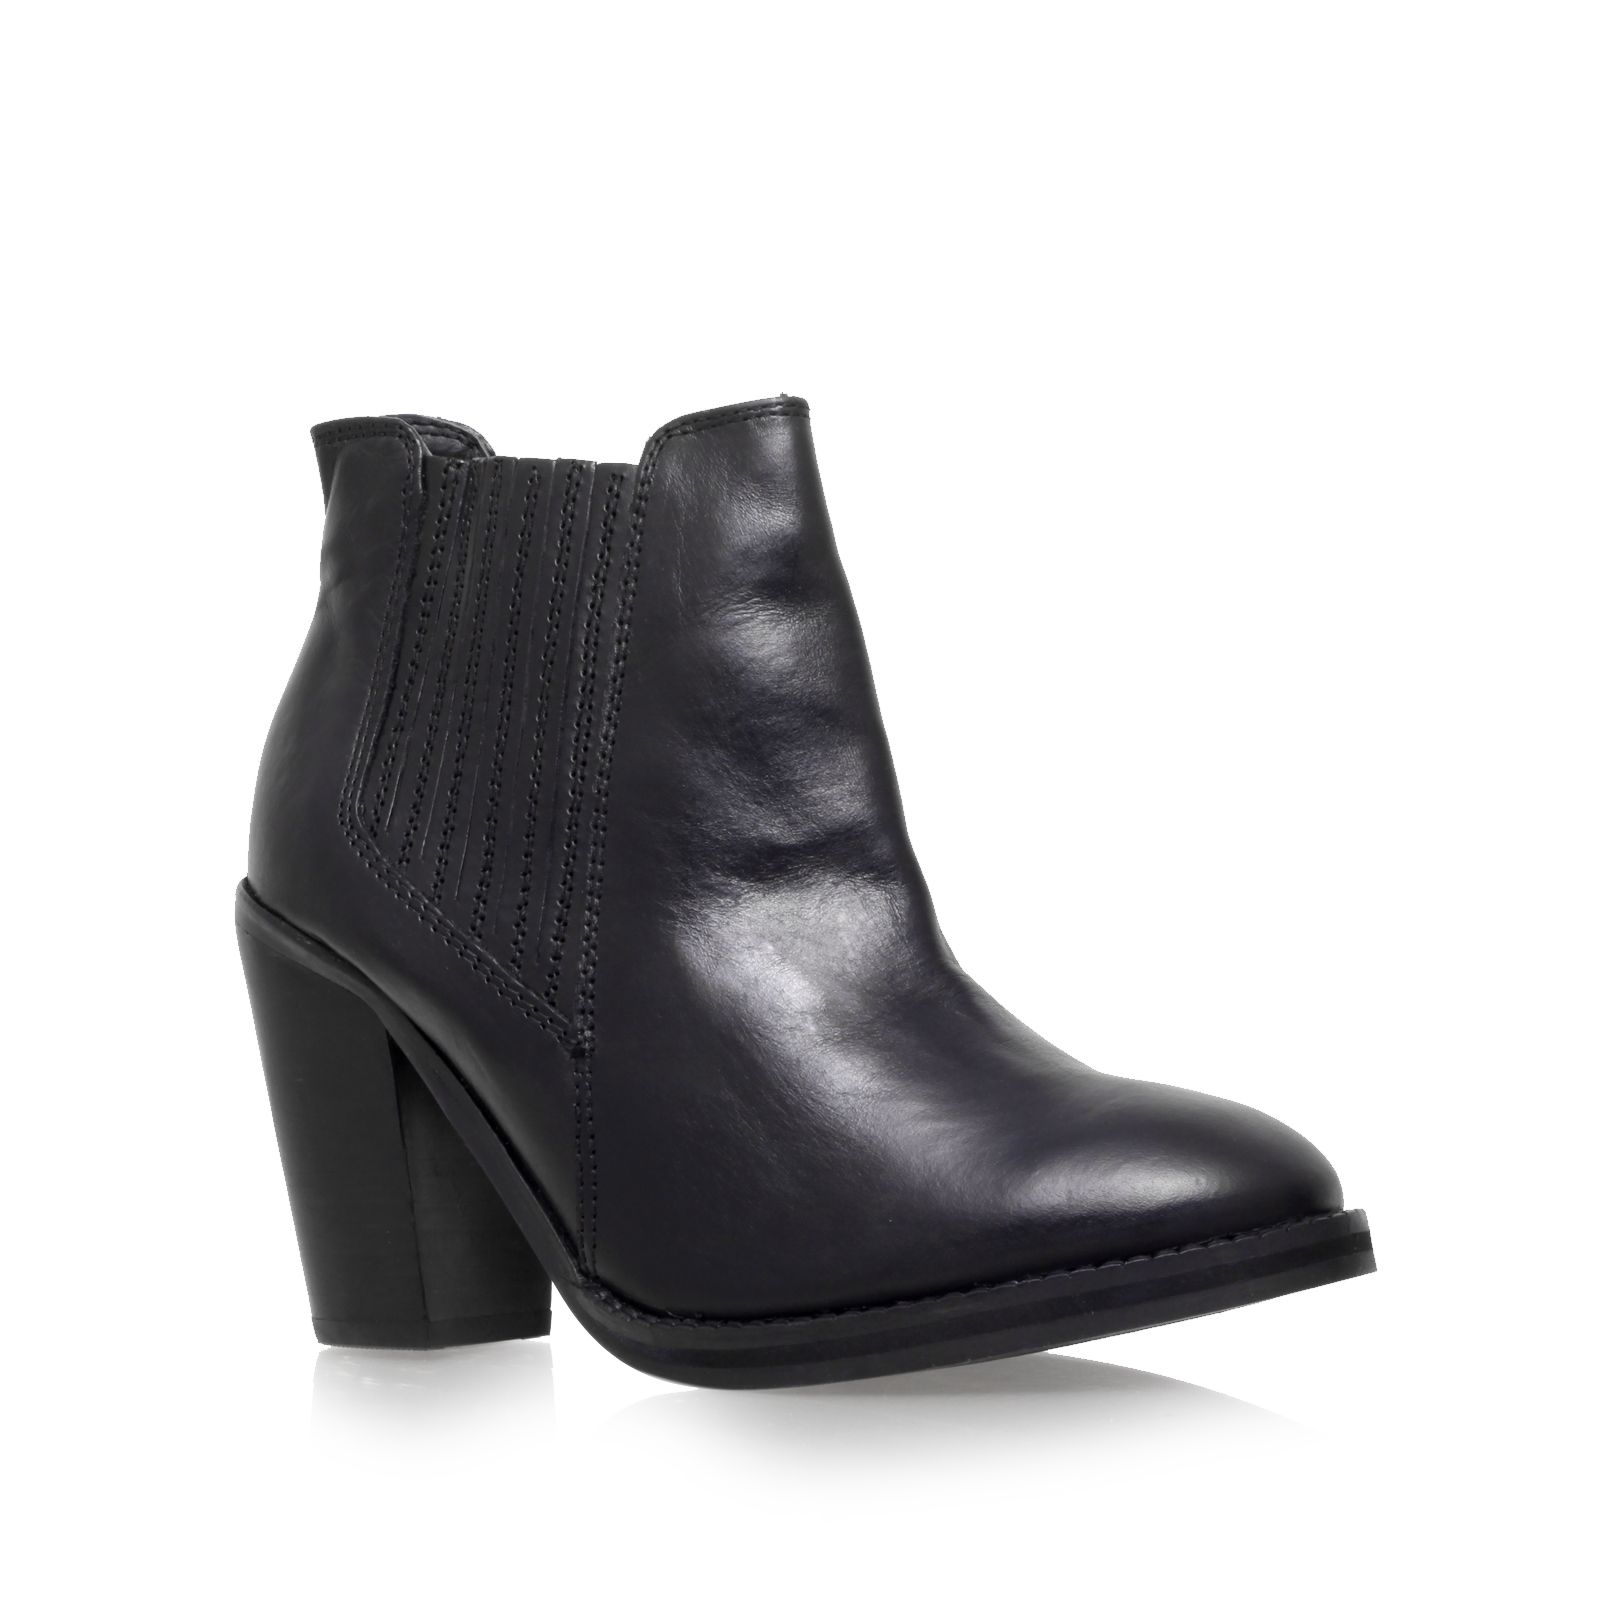 Carvela Kurt Geiger Tally High Heel Ankle Boots In Black | Lyst